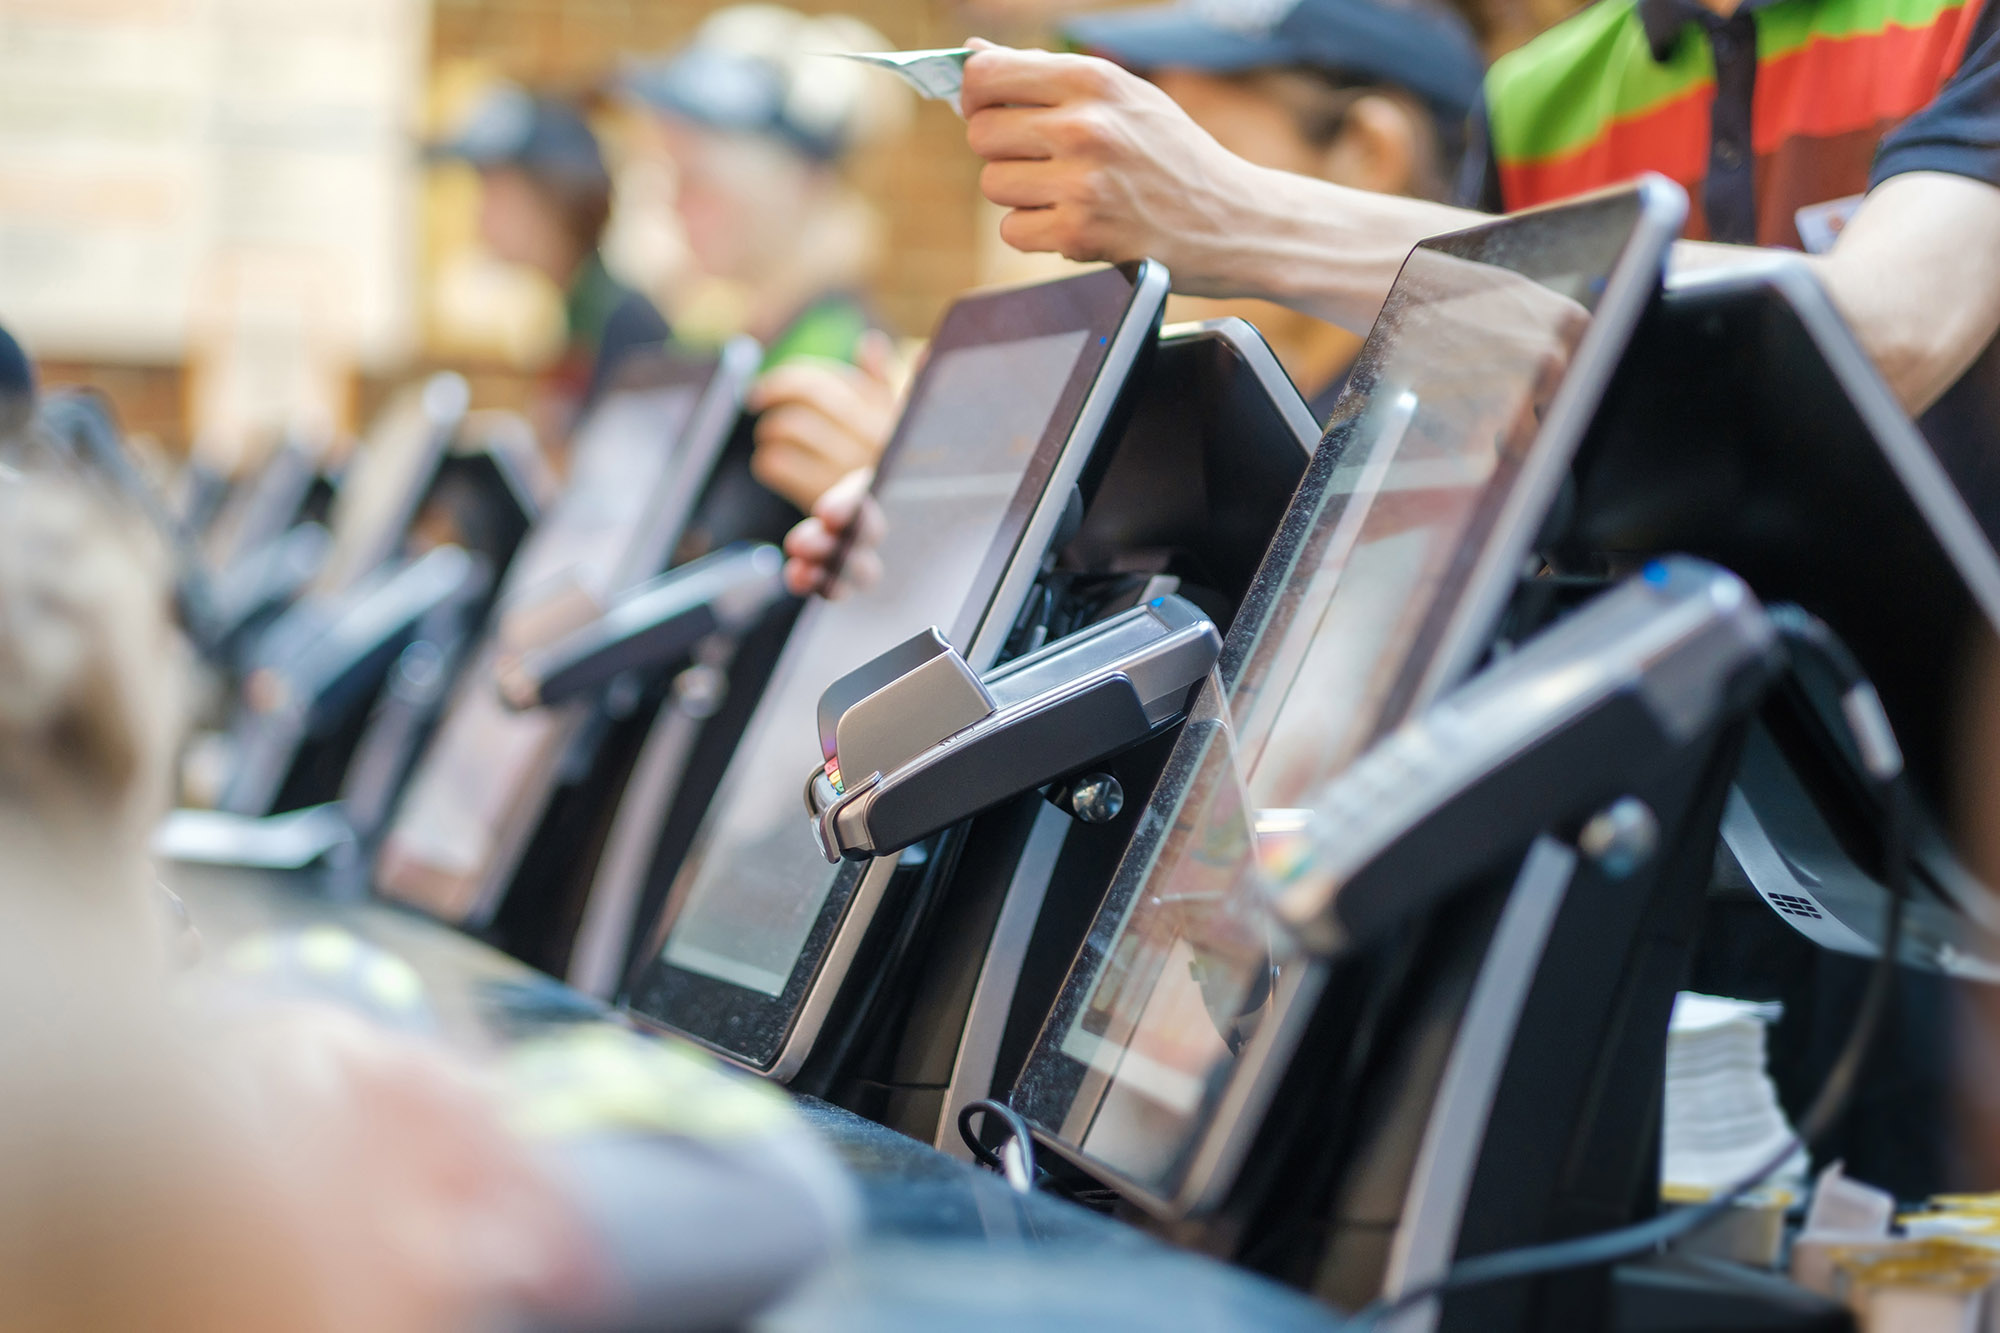 A row of POS machines at the front counter of a fast food restaurant